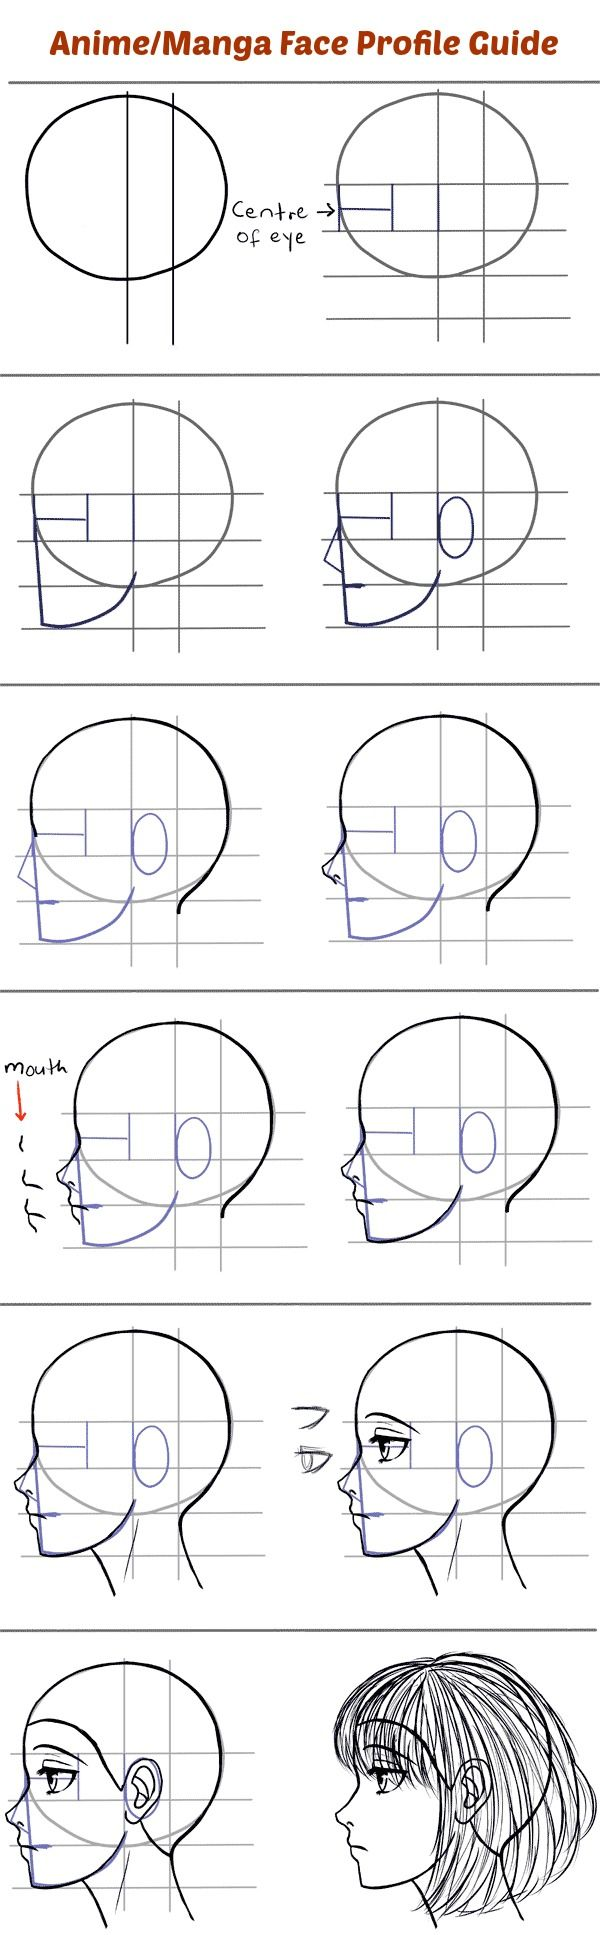 How to Draw the Side of a Face in Manga Style. Please also visit www.JustForYouPropheticArt.com for more colorful art and inspirational stories. Thank you so much!